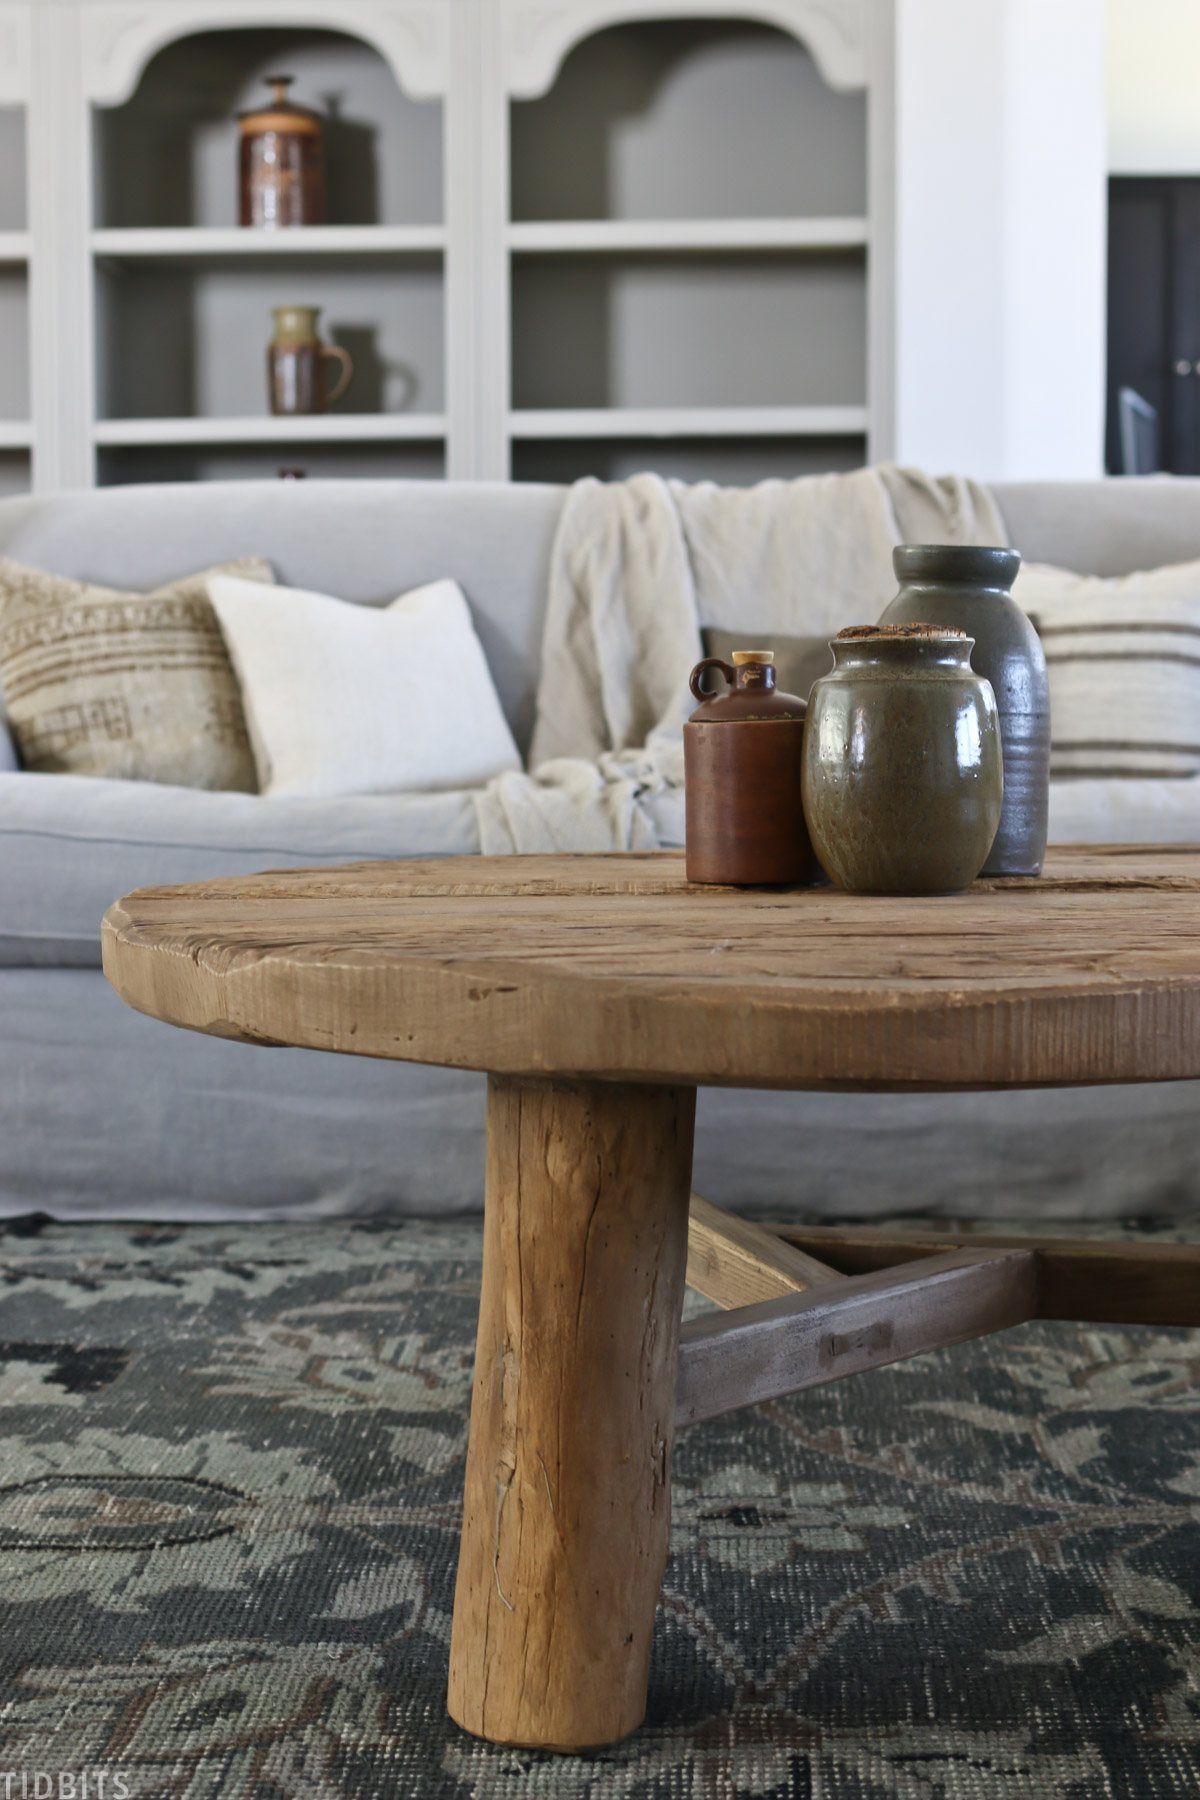 How To Style A Round Coffee Table 3 Ideas Tidbits